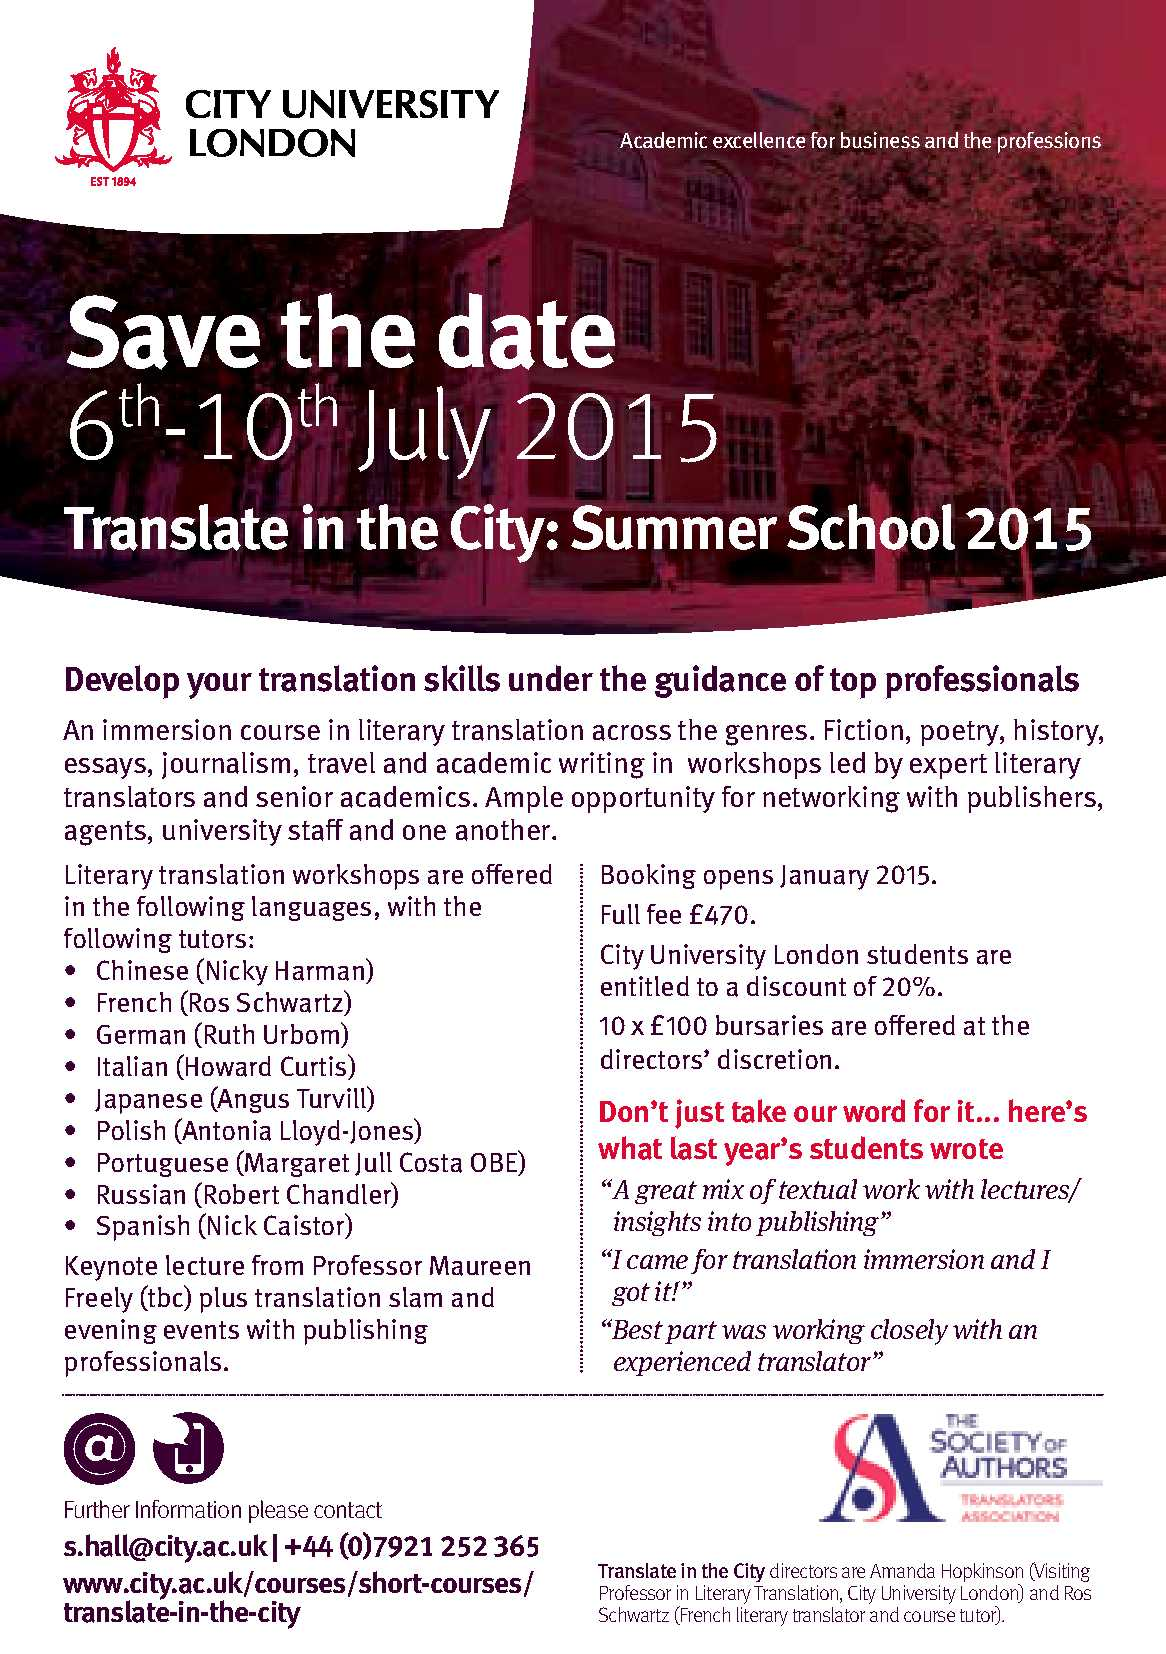 Save the Date_FINAL_YD337_Translate_the_City_2015